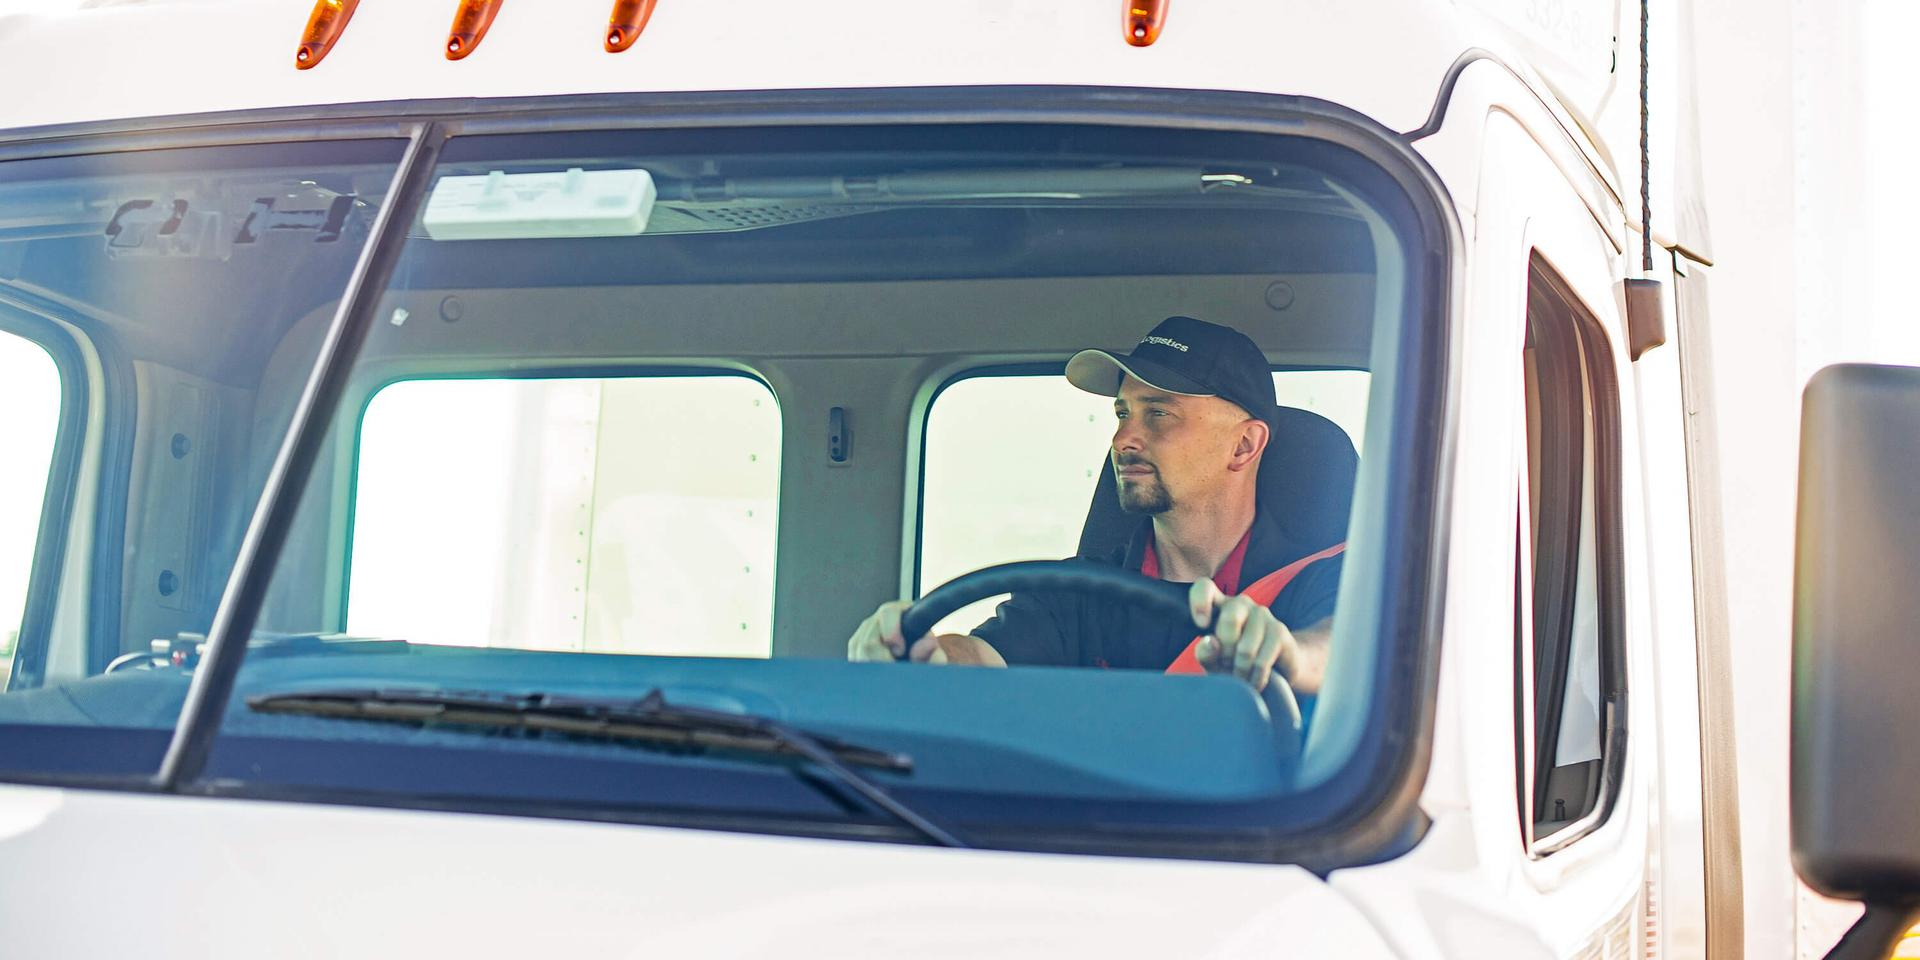 XPO LTL driver behind the wheel of truck